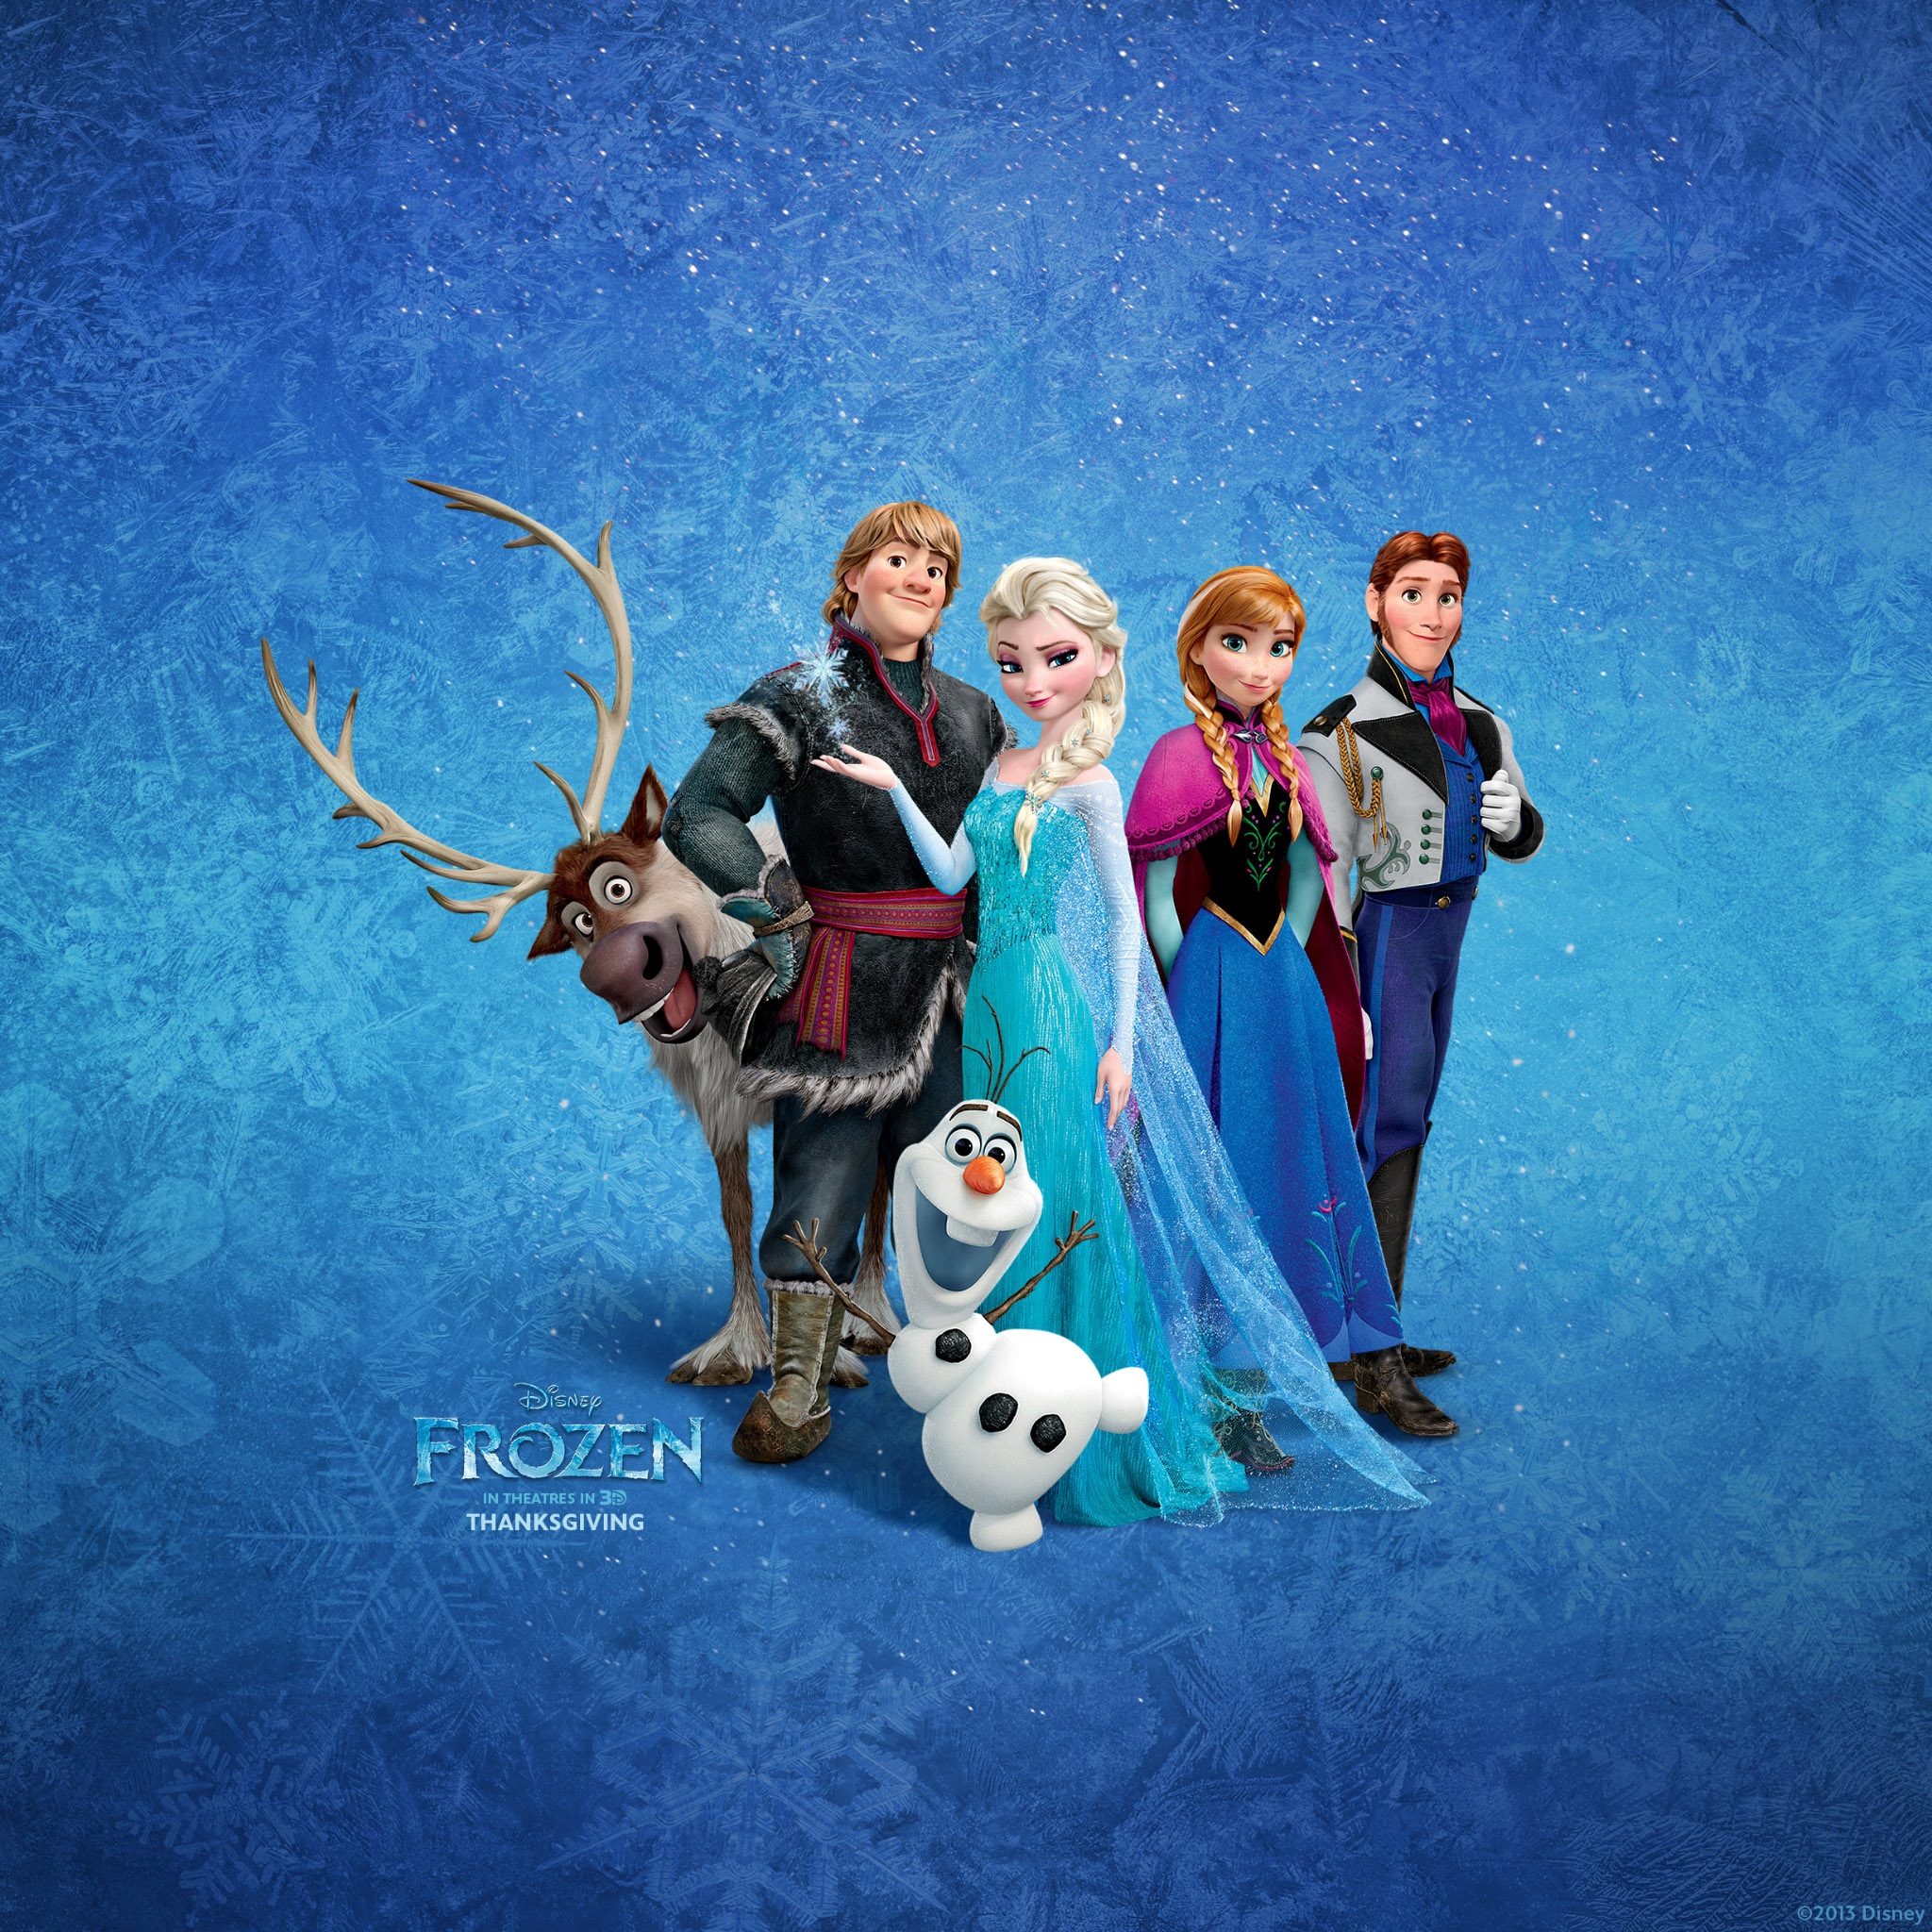 Frozen Wallpaper iPad on WallpaperSafari